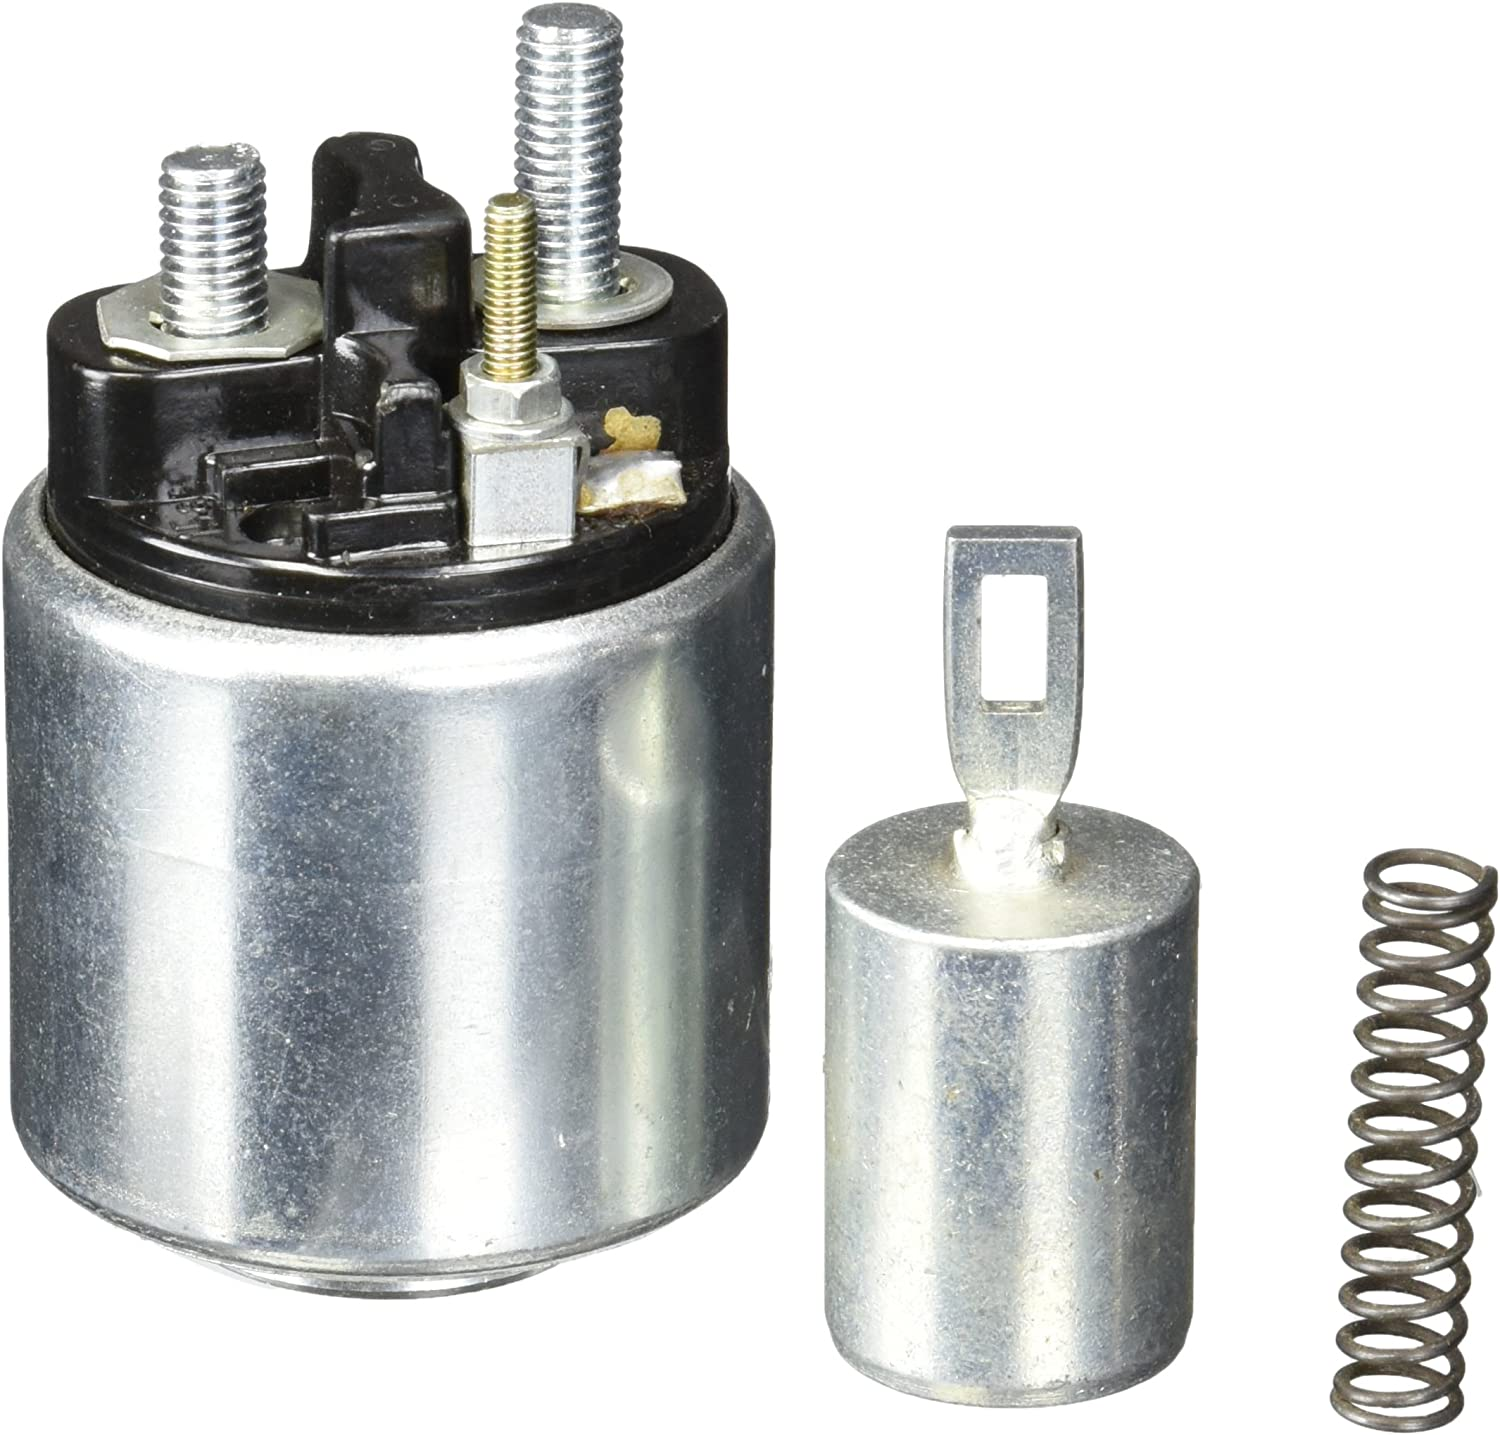 Finally popular brand Standard Motor Products Low price Solenoid SS239